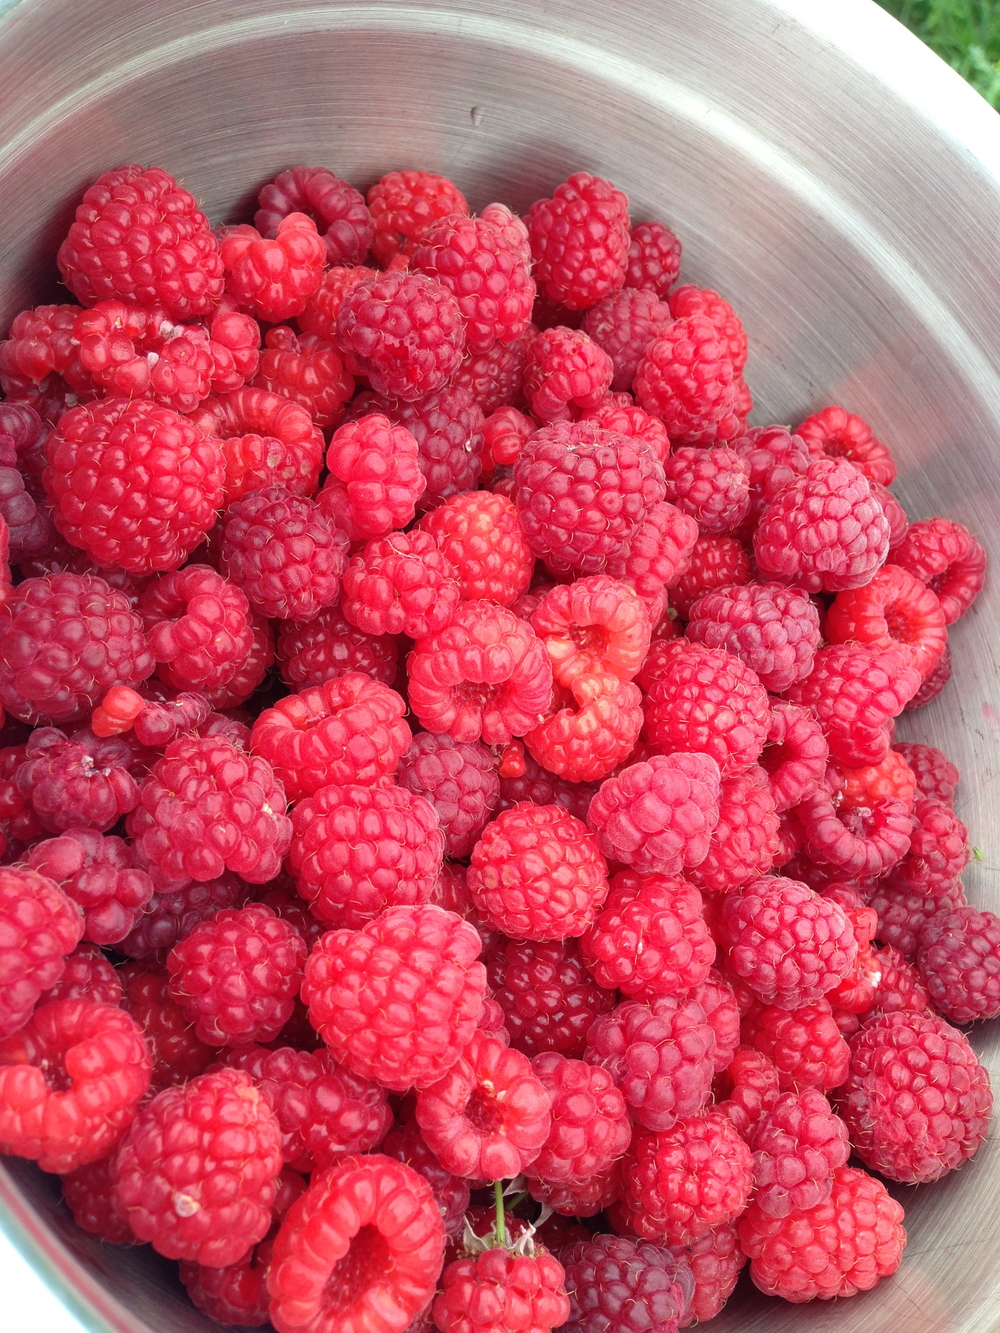 Step 3: Pick all the Berries